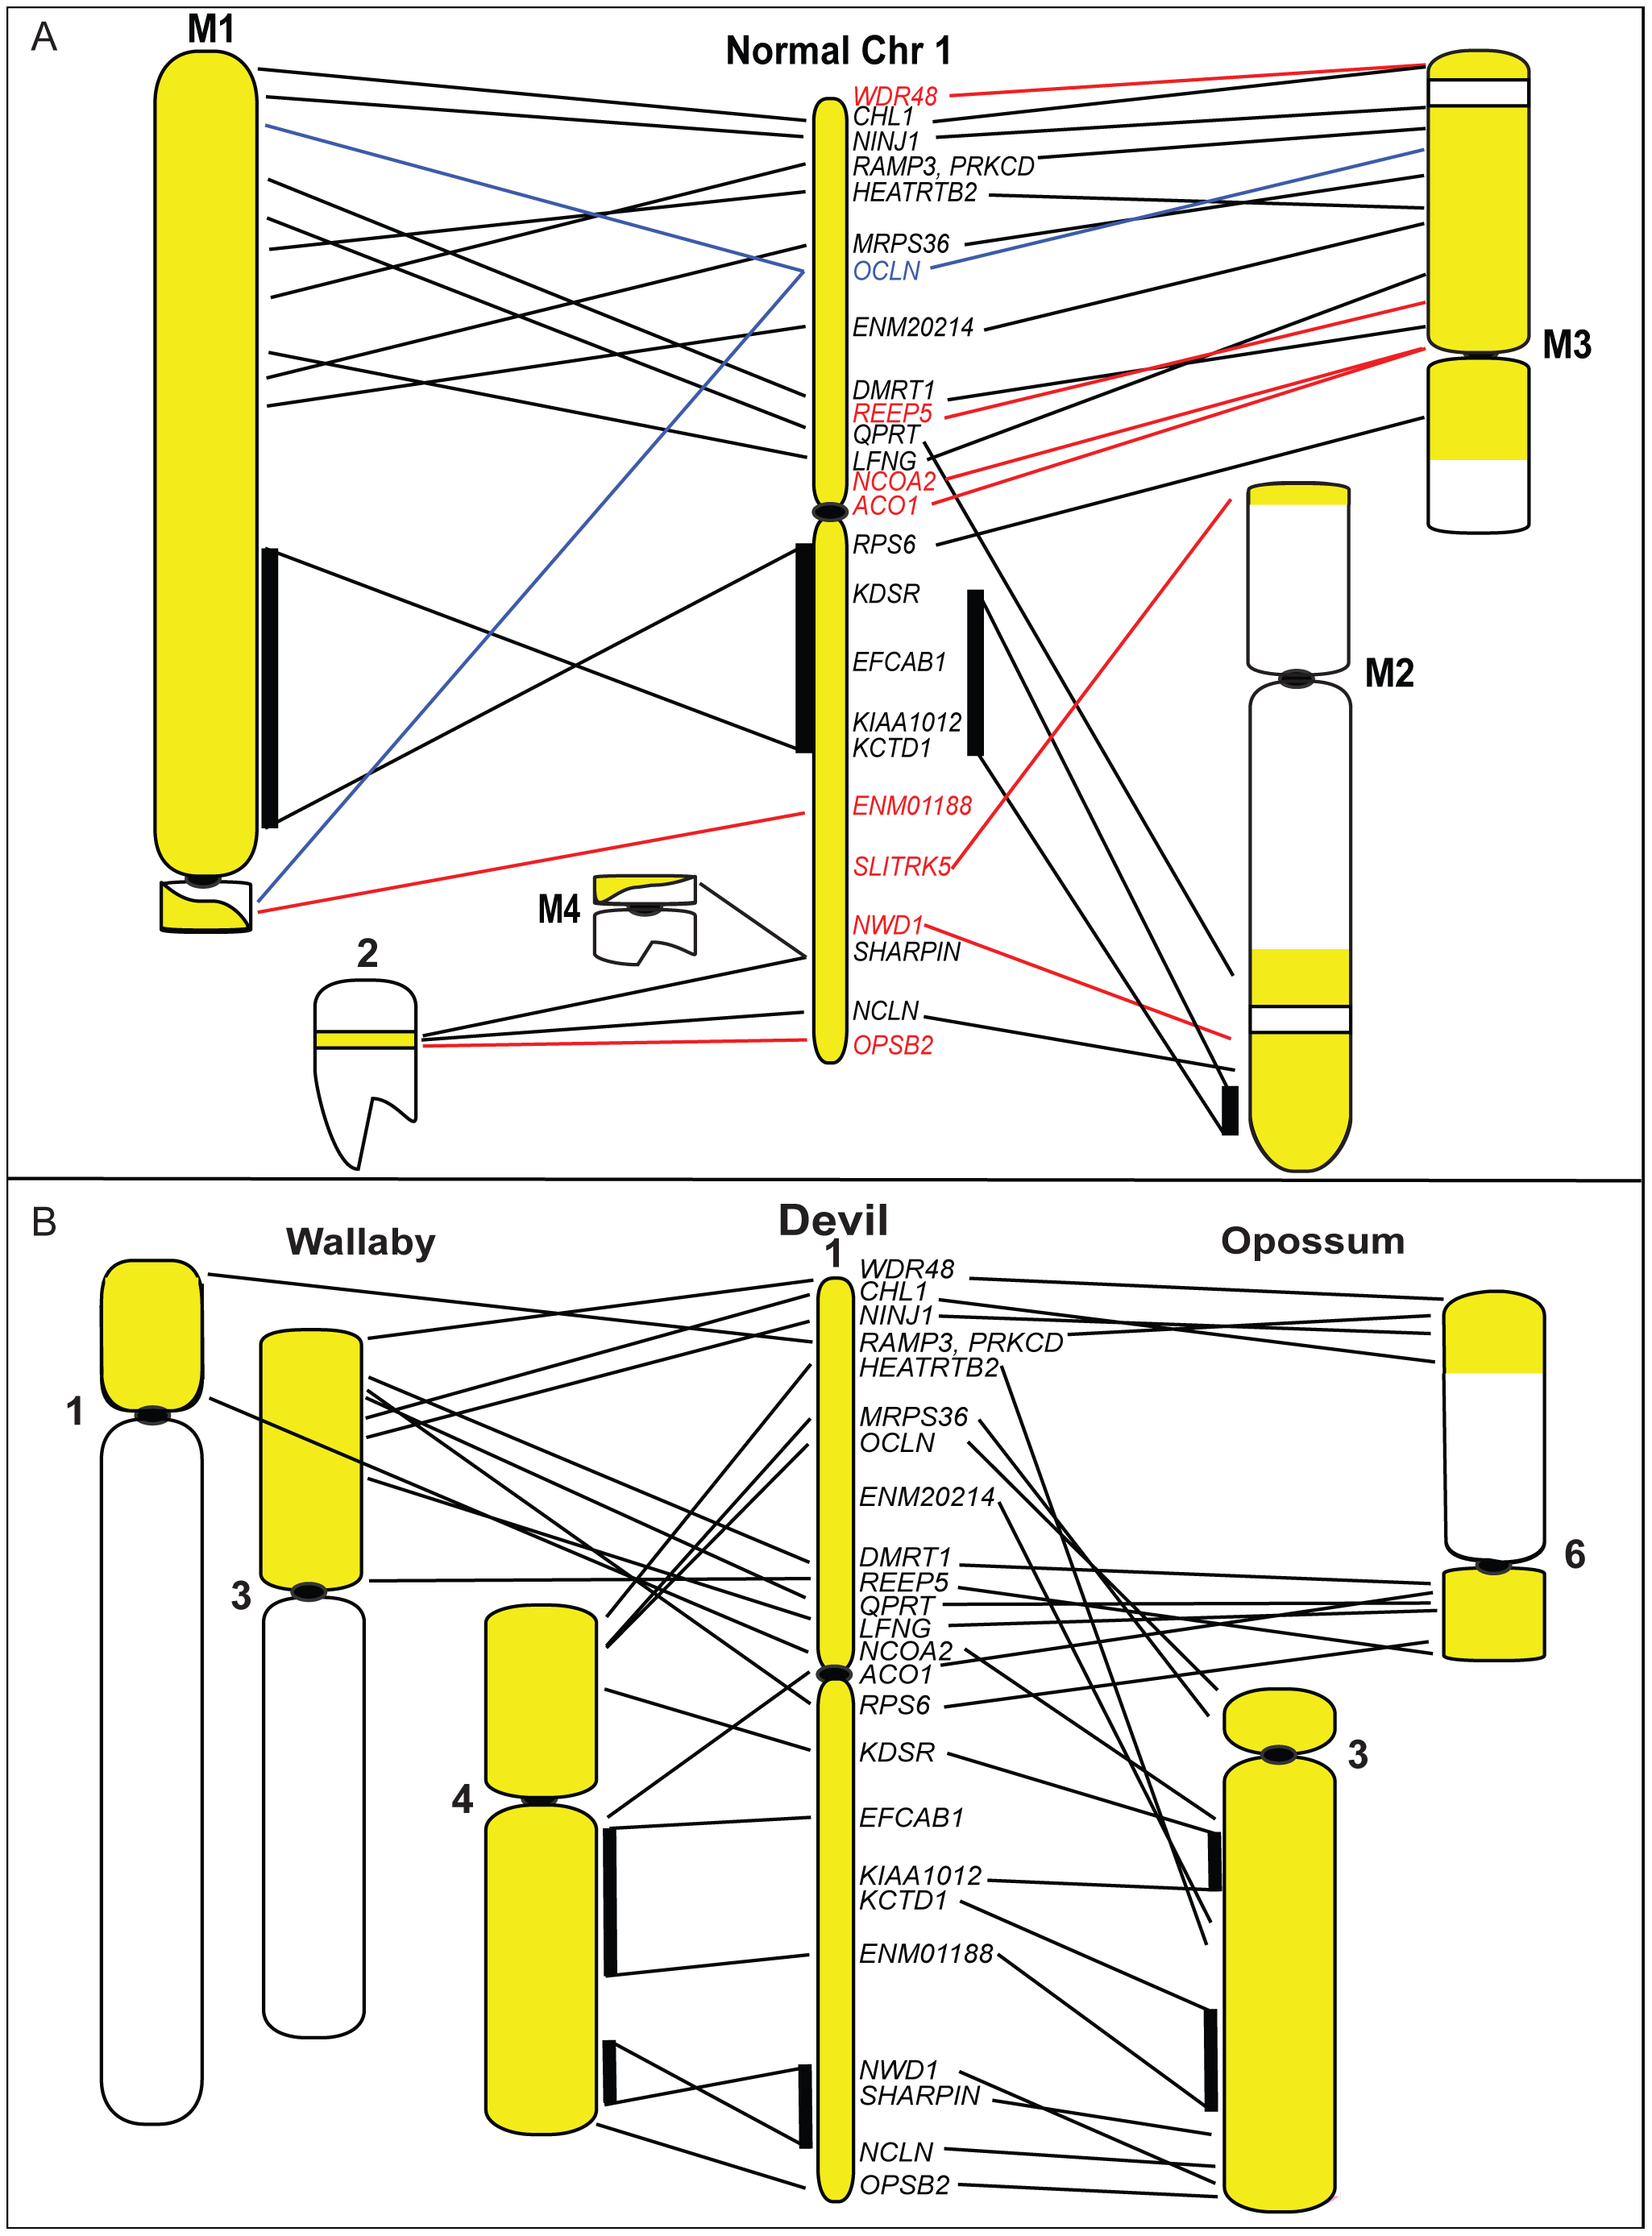 Chromosome 1 rearrangements in DFTD and during marsupial evolution.